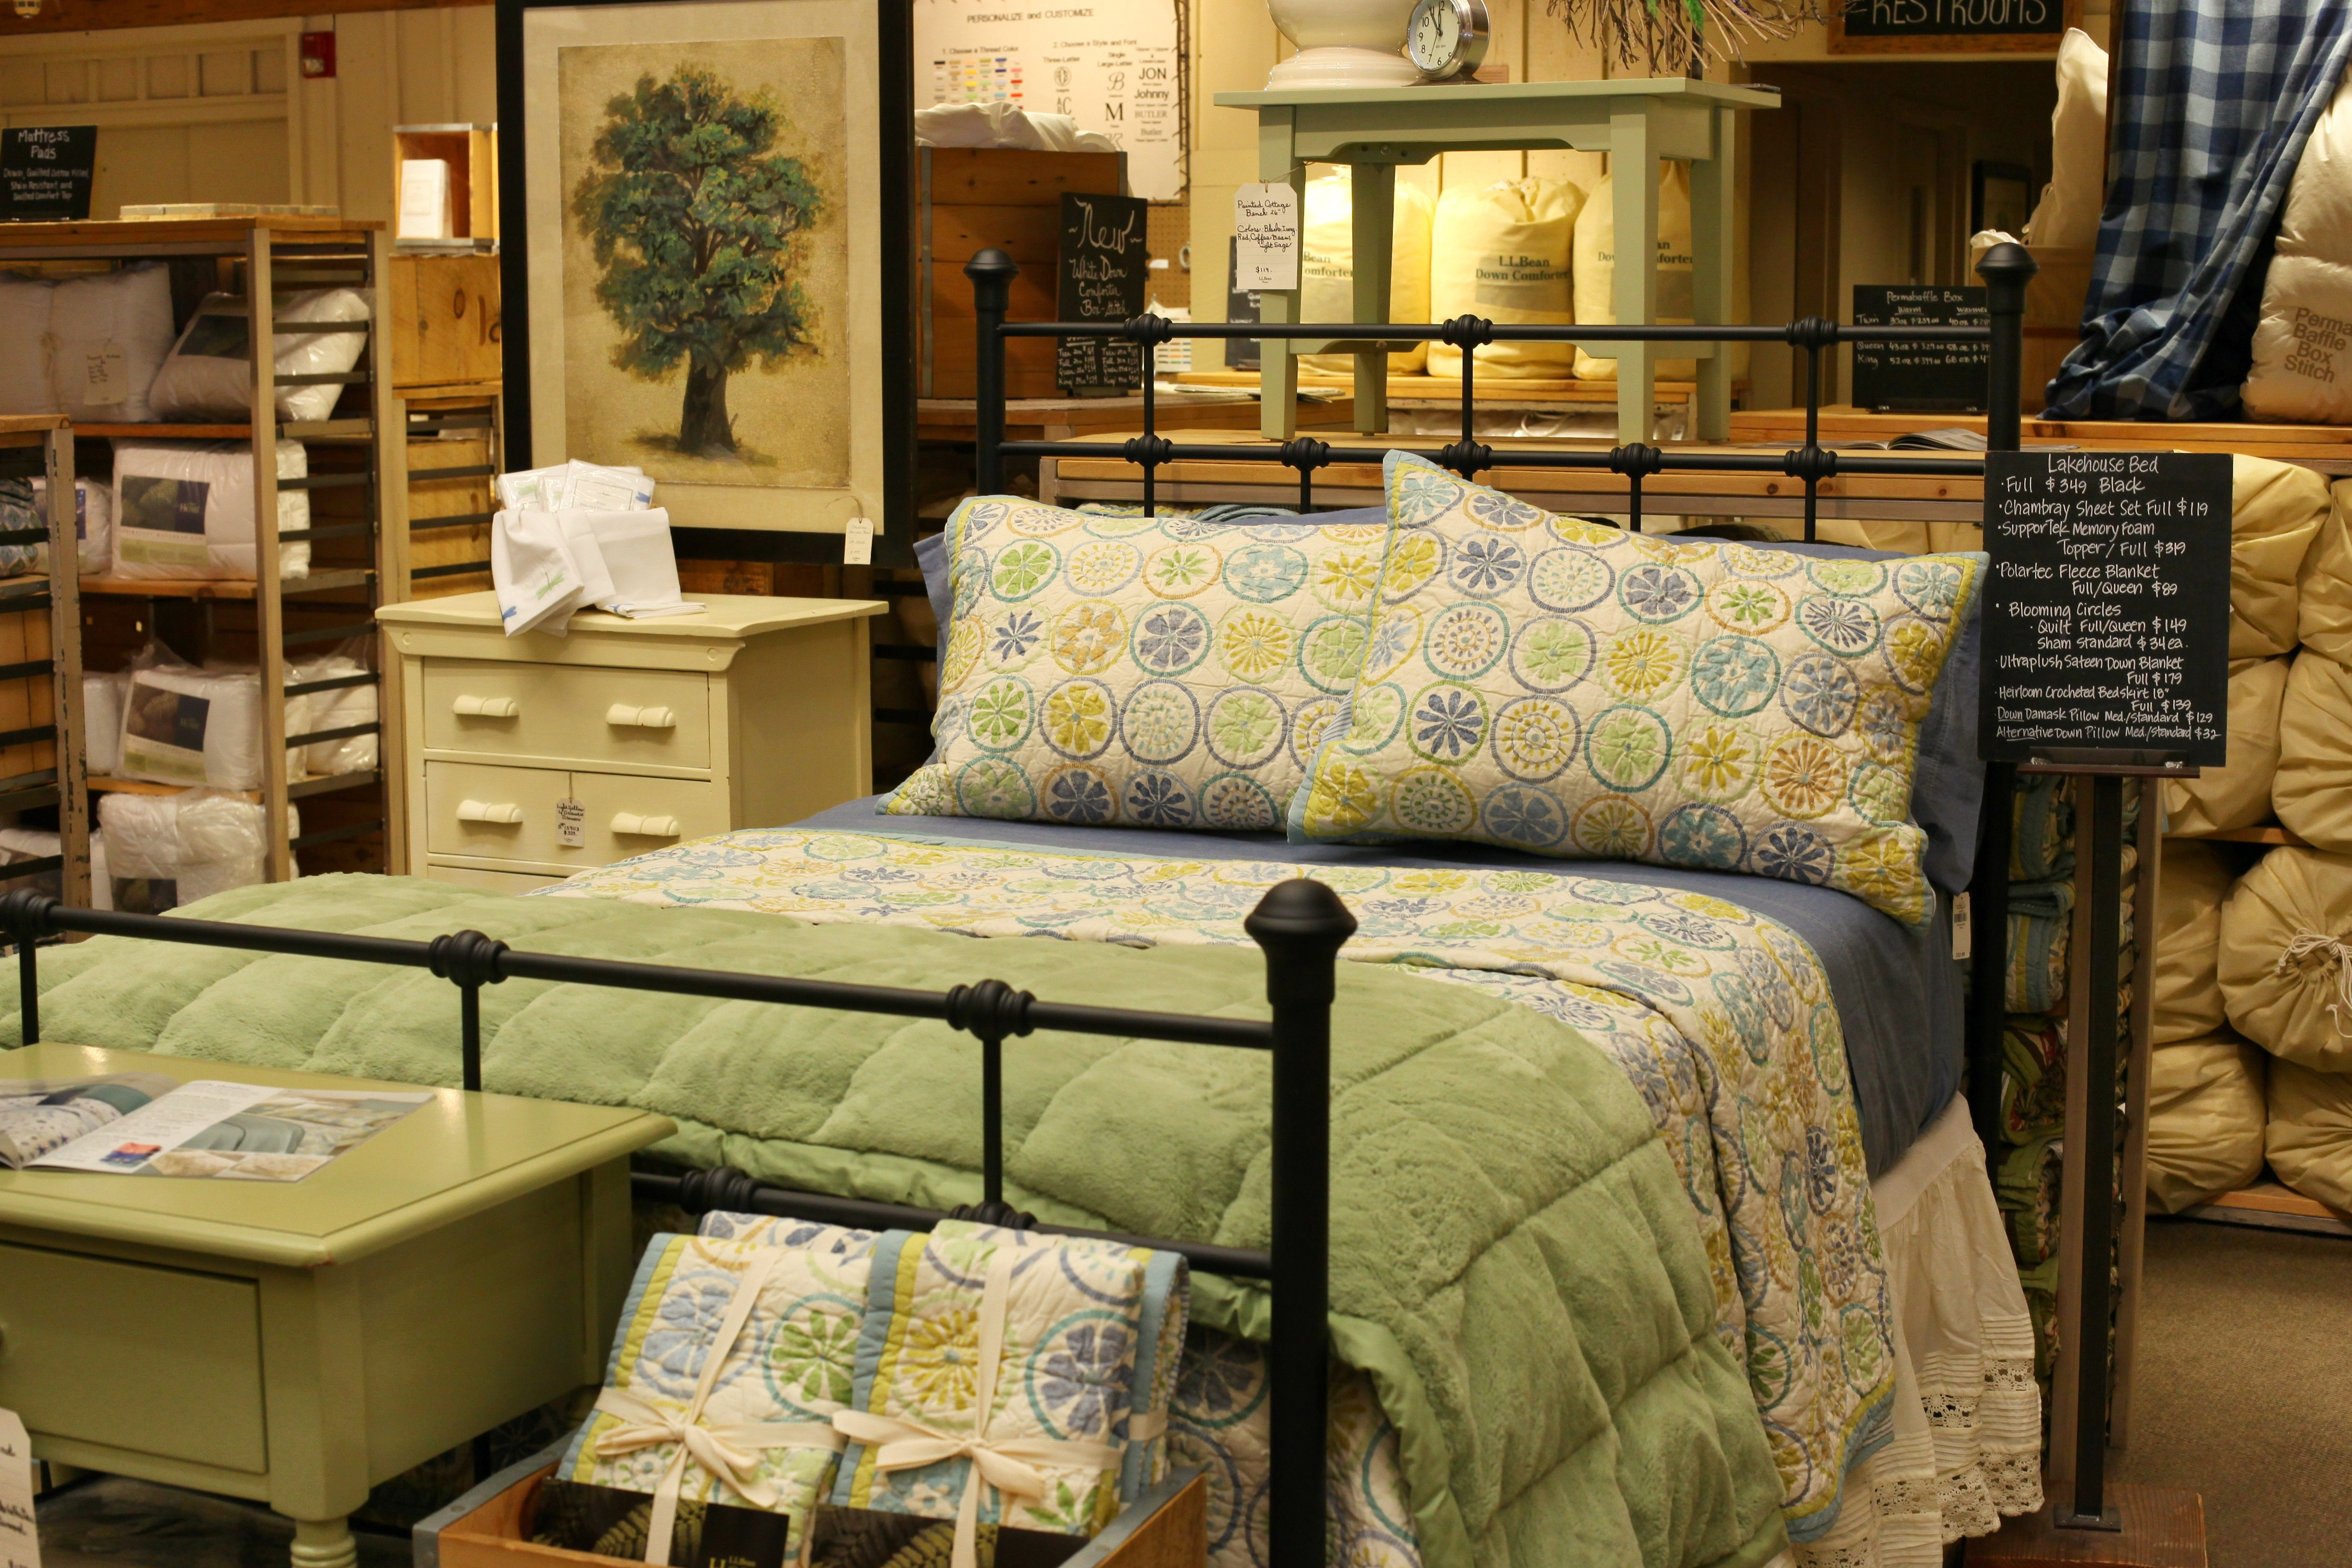 L L Bean Beds And Bedding Sheets Blankets Comforters At The